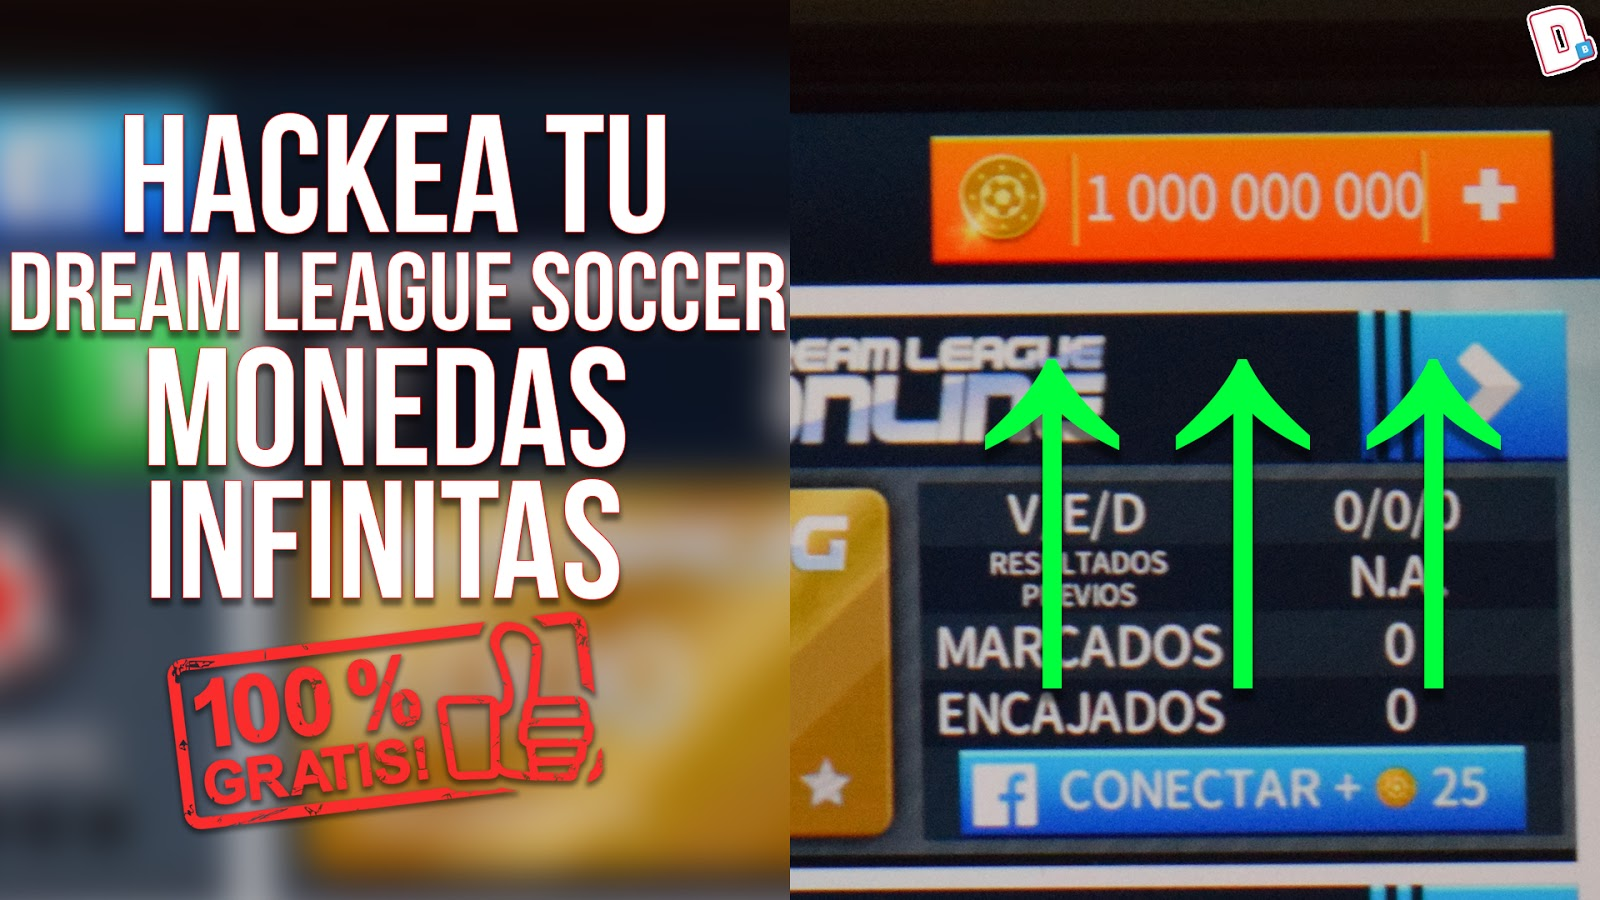 Dream League Soccer Monedas Infinitas Y Todo Desbloqueado D